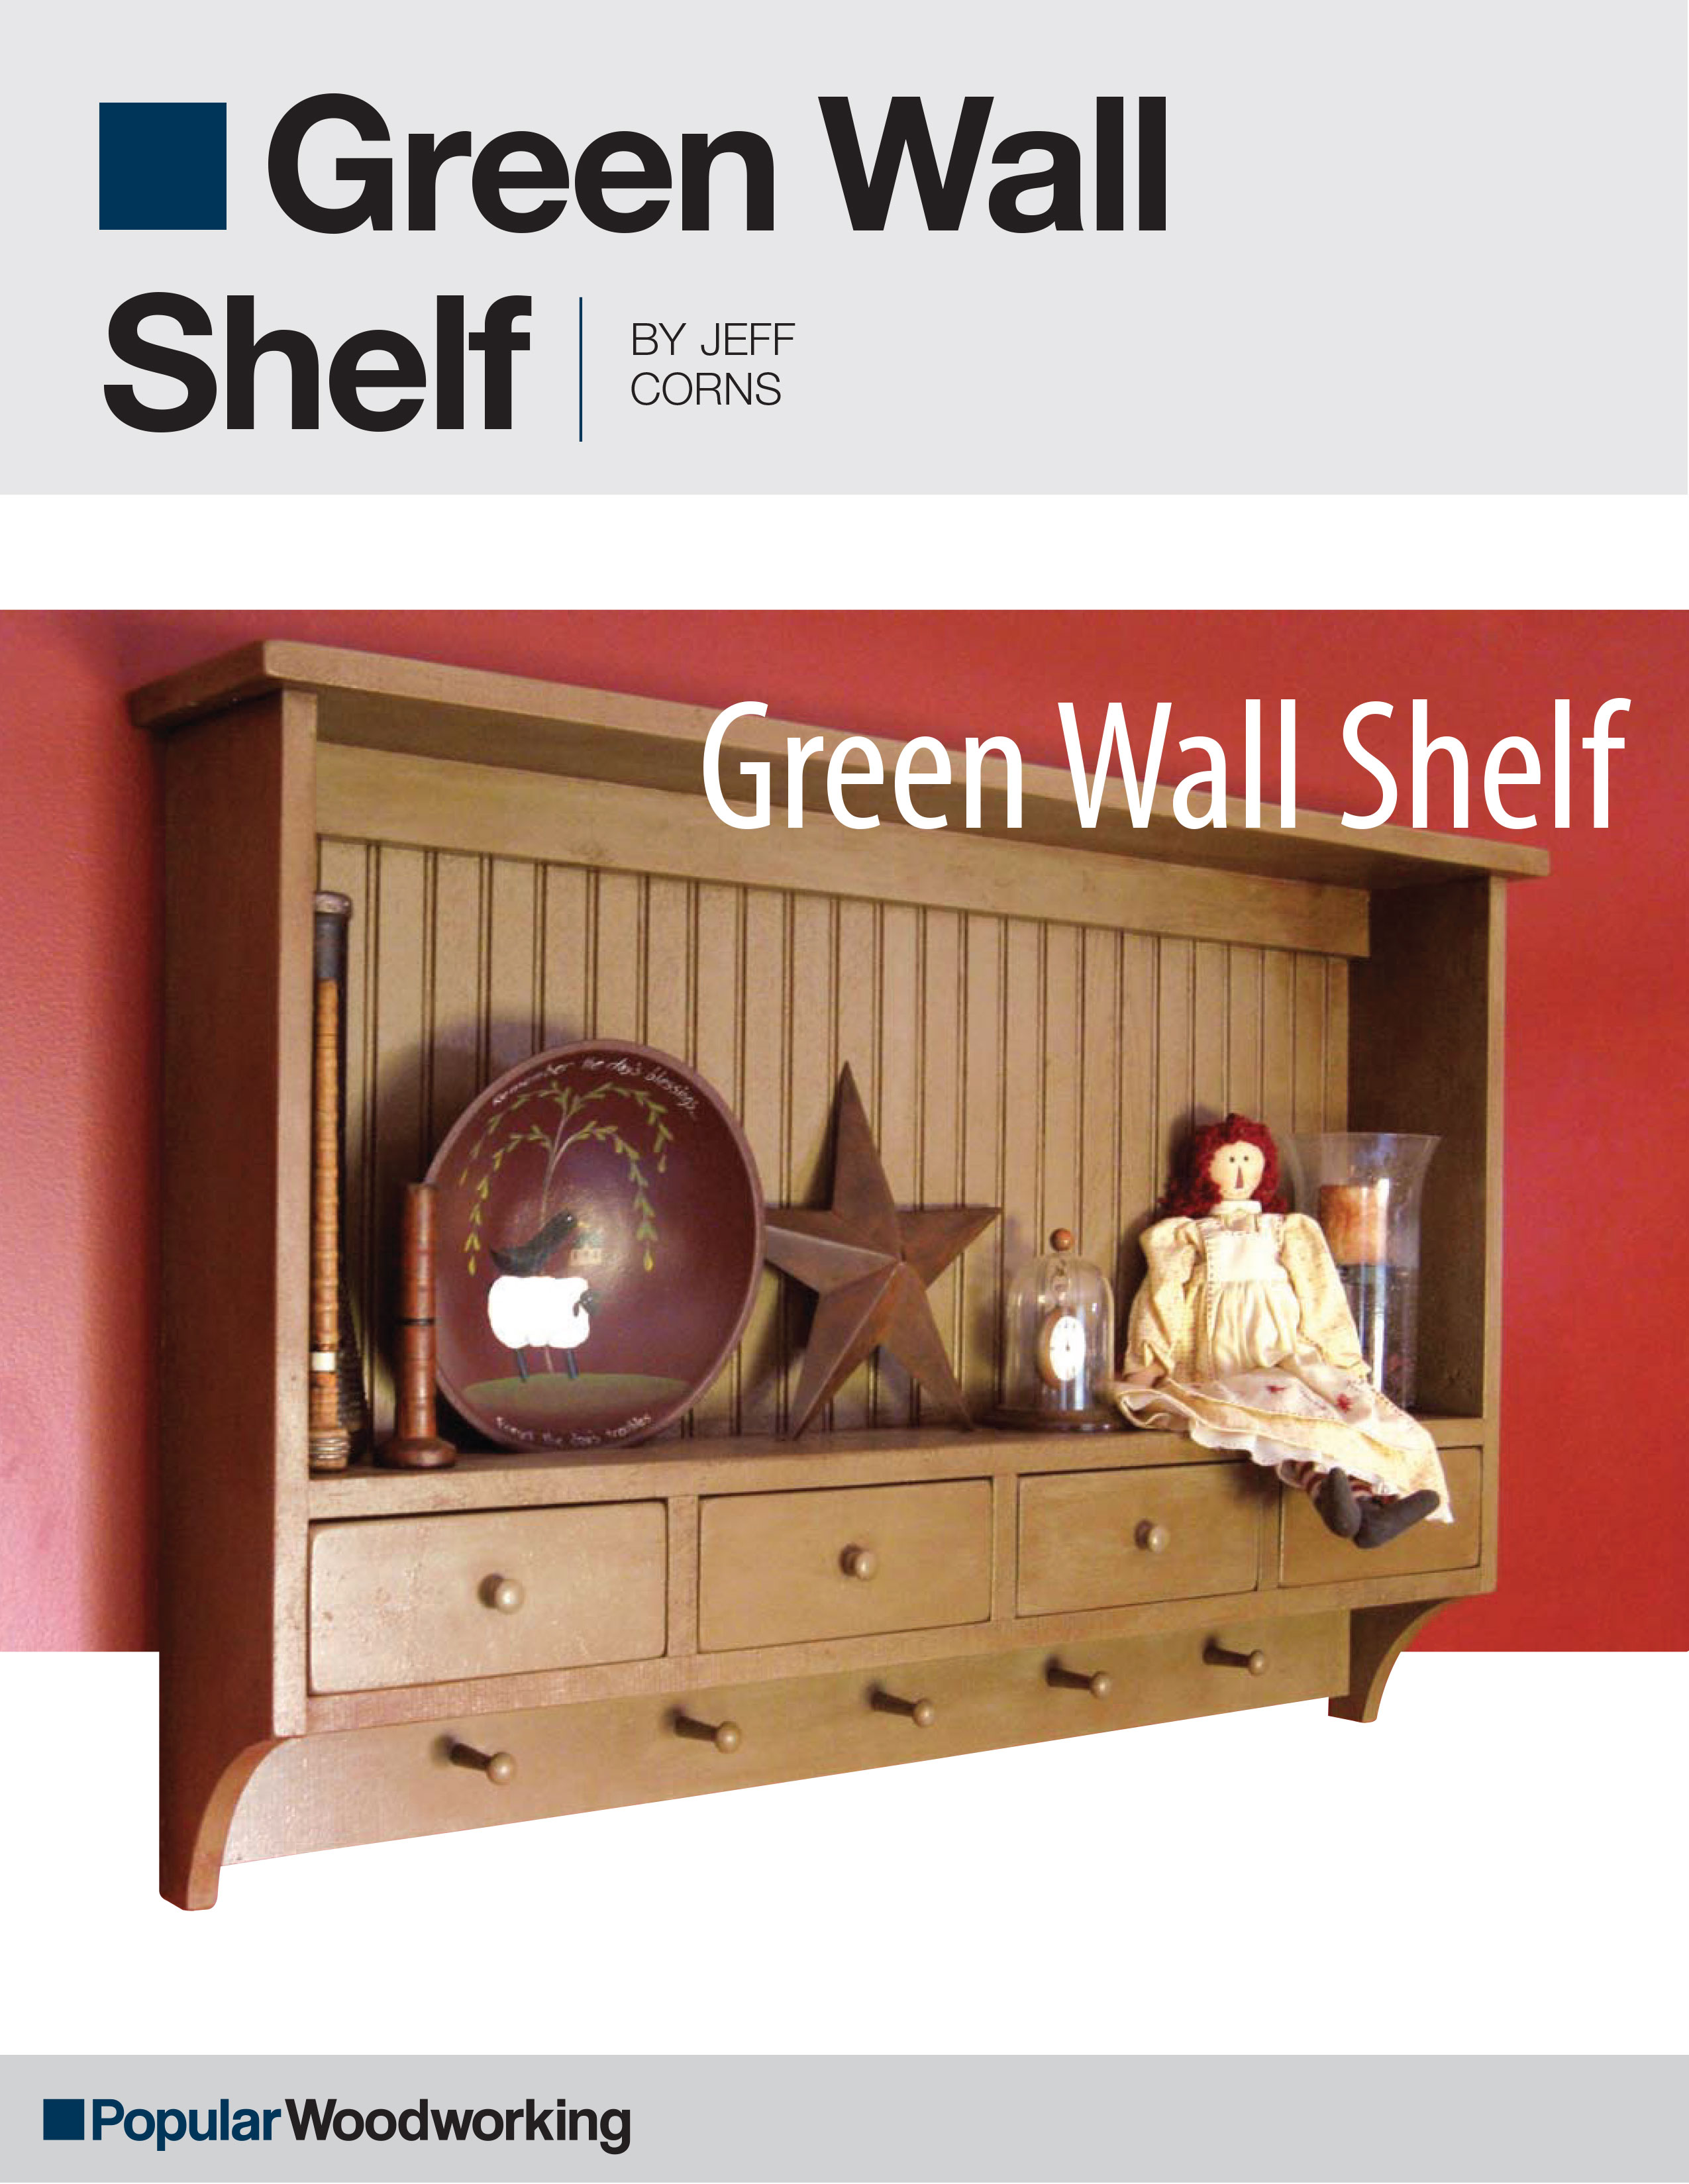 Green Wall Shelf Project Download | Popular Woodworking ...